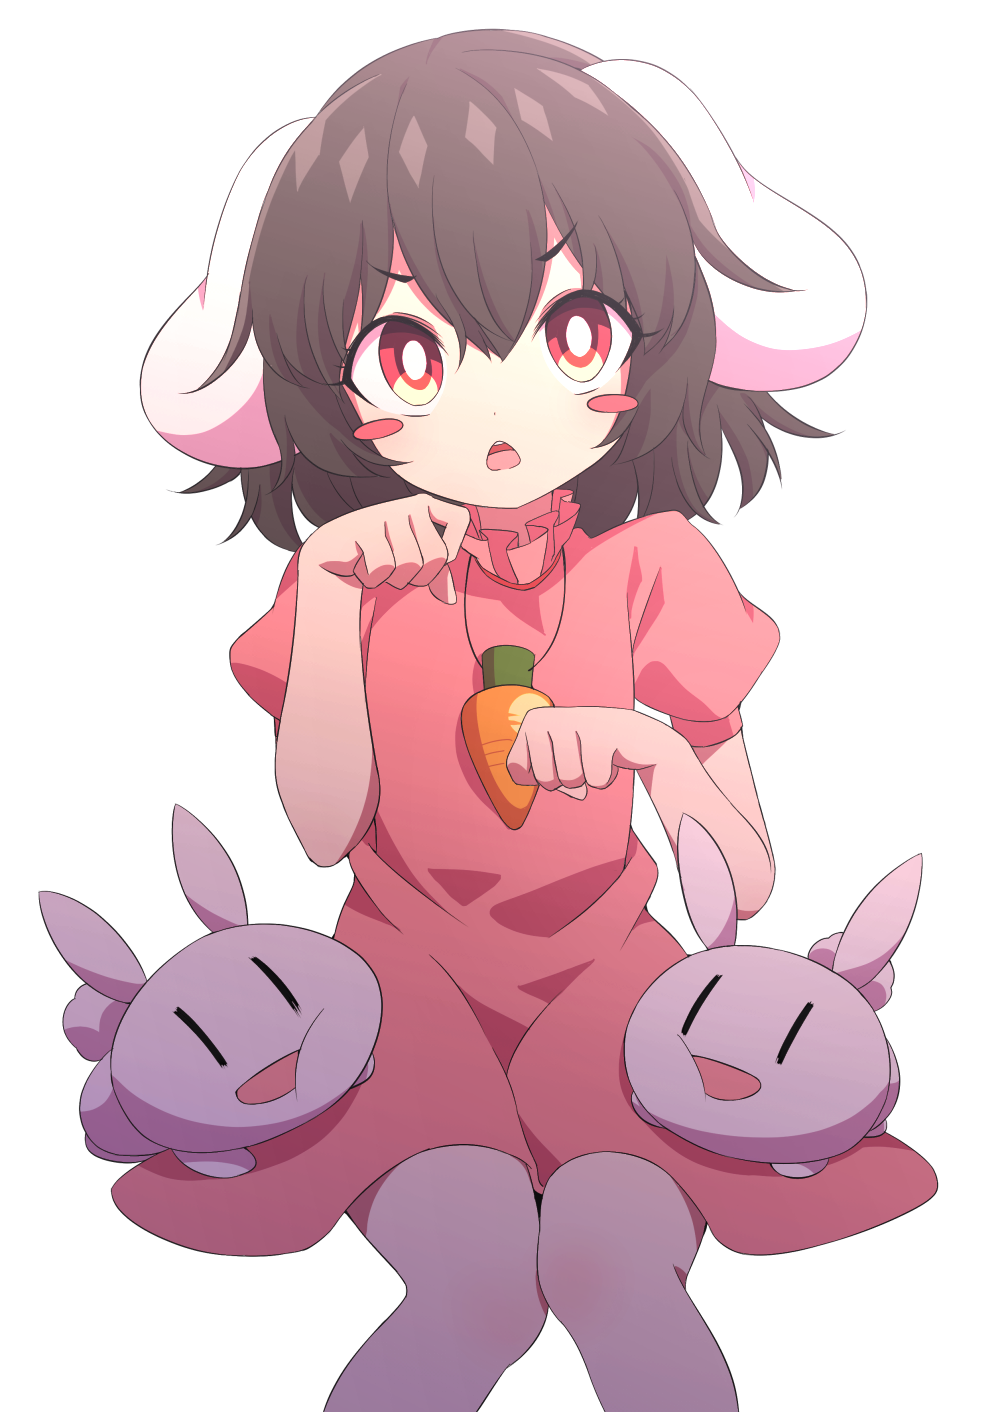 1girl animal_ears arms_up black_hair blush_stickers bright_pupils buck_teeth carrot_necklace chestnut_mouth commentary_request dress eyebrows_visible_through_hair feet_out_of_frame hair_between_eyes head_tilt highres inaba_tewi knees_together paw_pose pink_dress puffy_short_sleeves puffy_sleeves rabbit rabbit_ears red_eyes short_hair short_sleeves simple_background sitting solo touhou tsukimirin white_background white_pupils  _ 